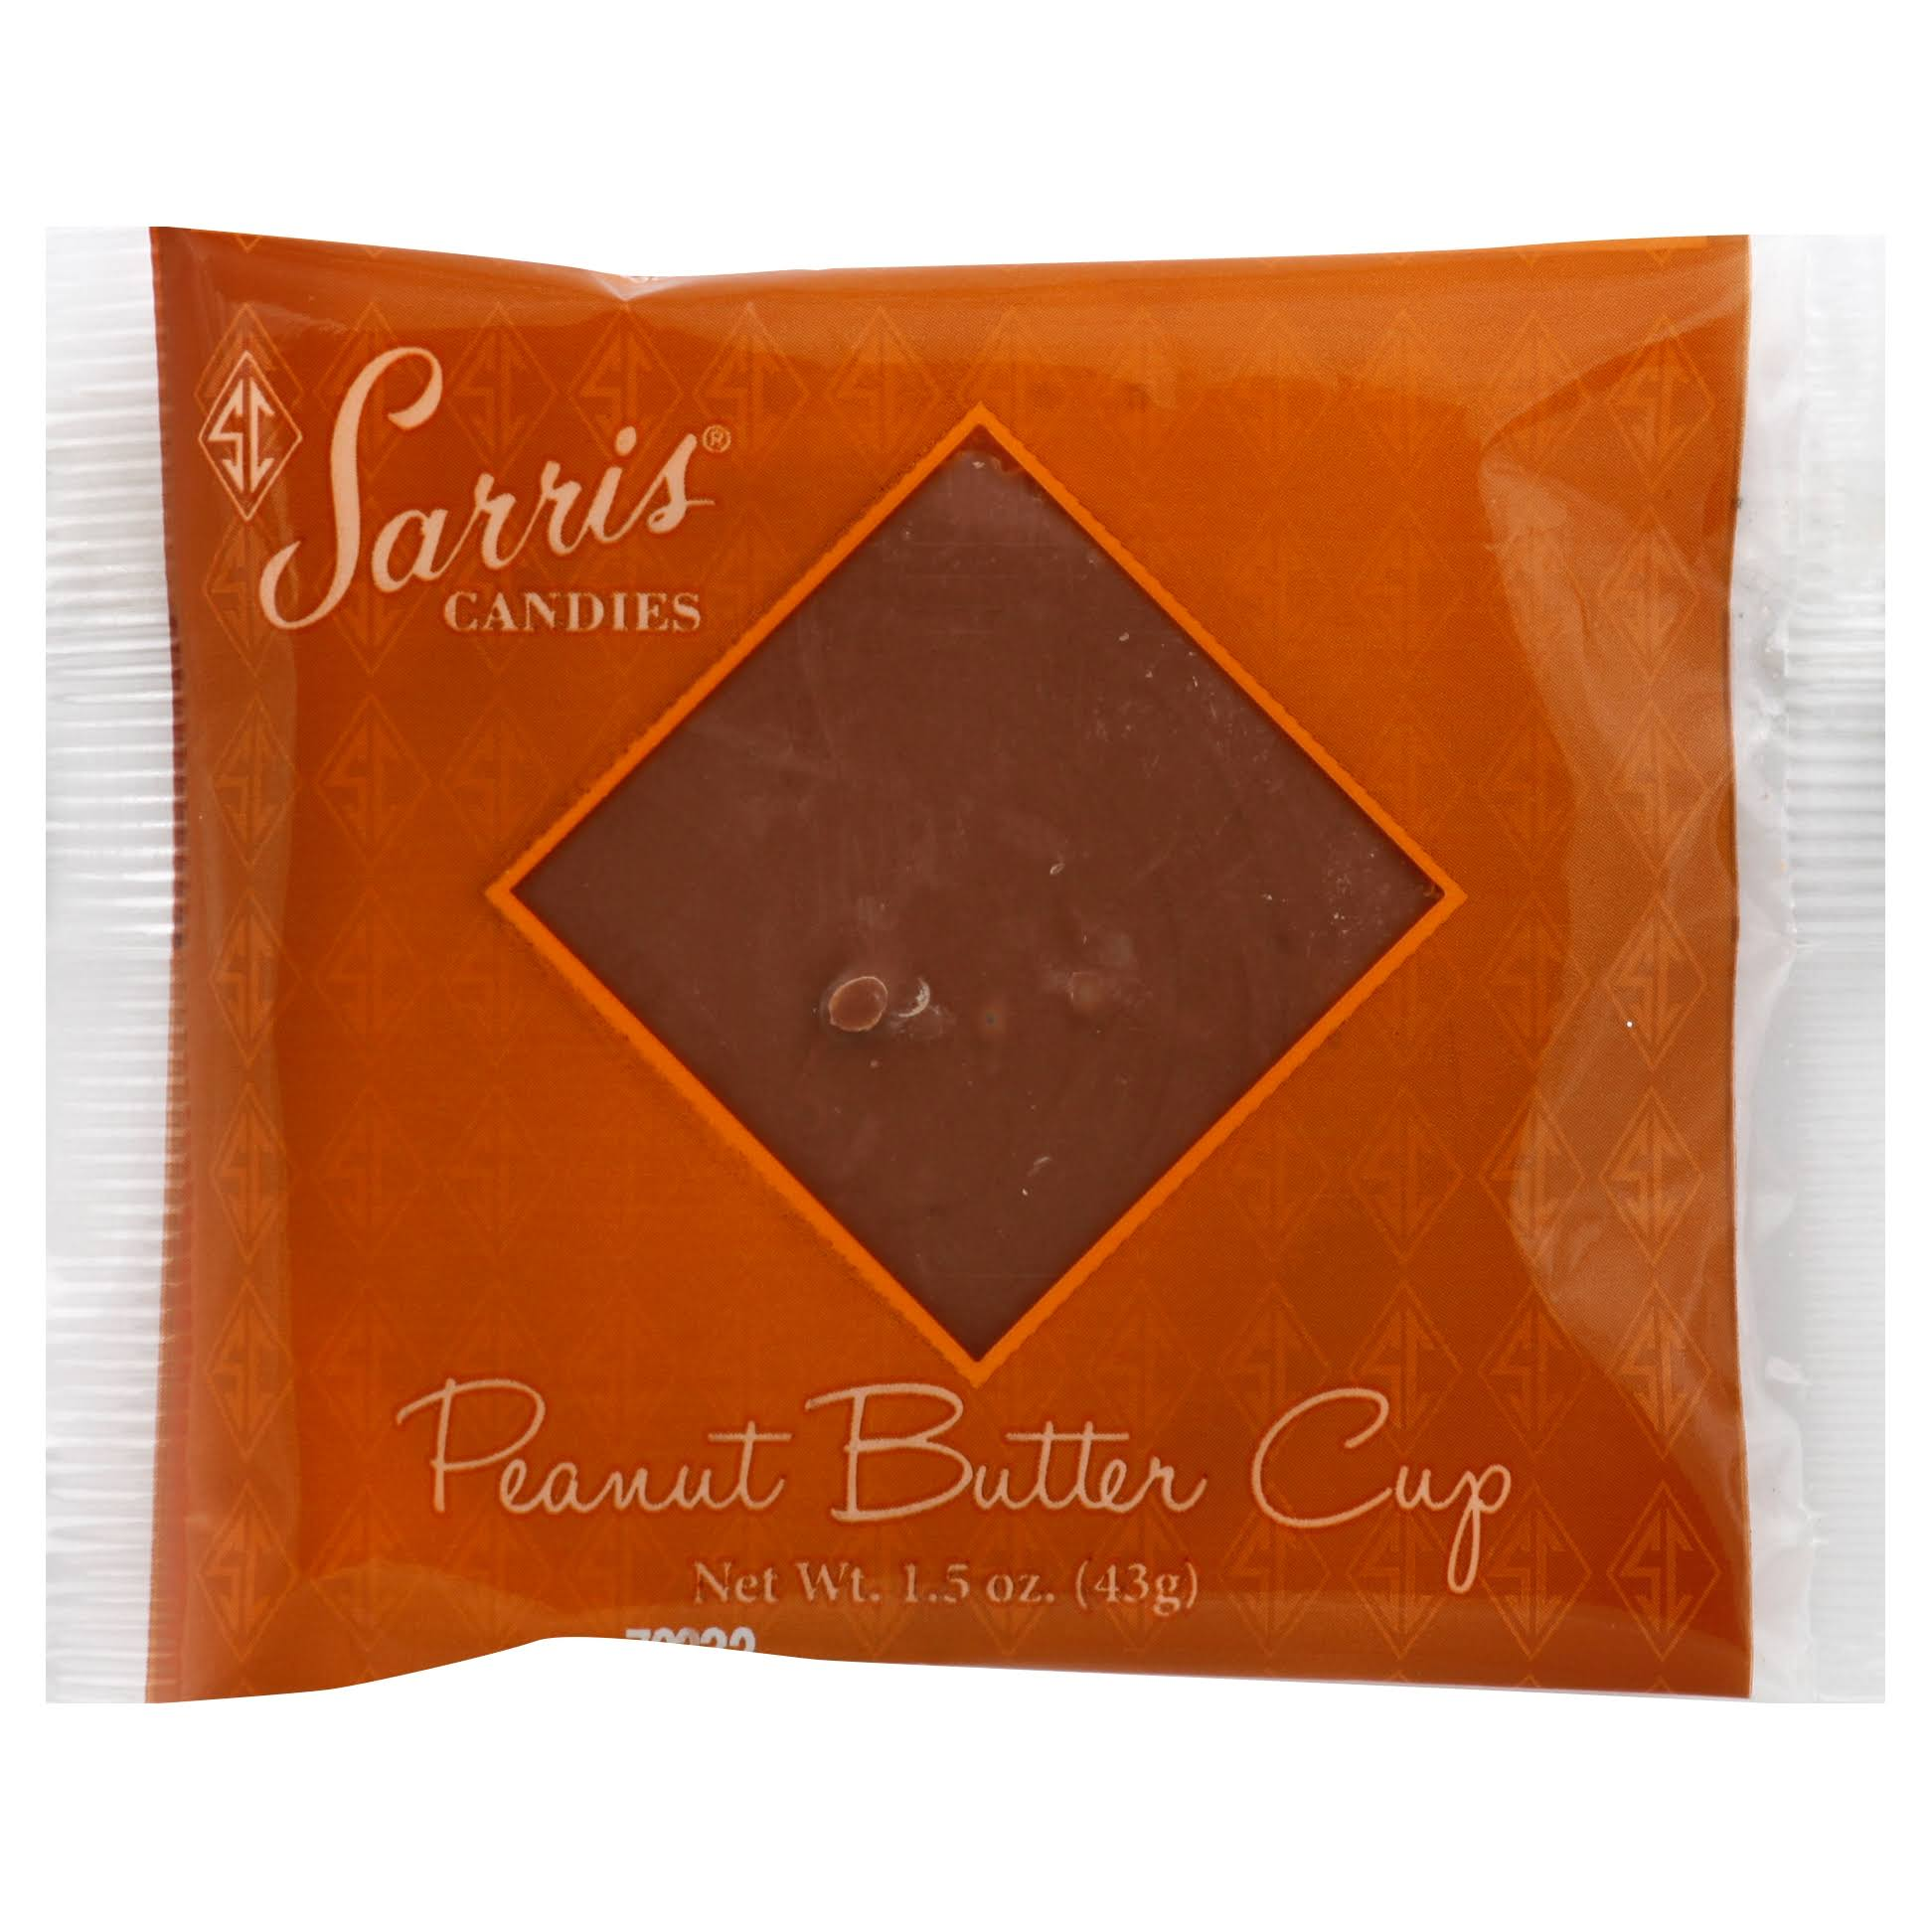 Sarris Candies Peanut Butter Cup - 1.5 oz